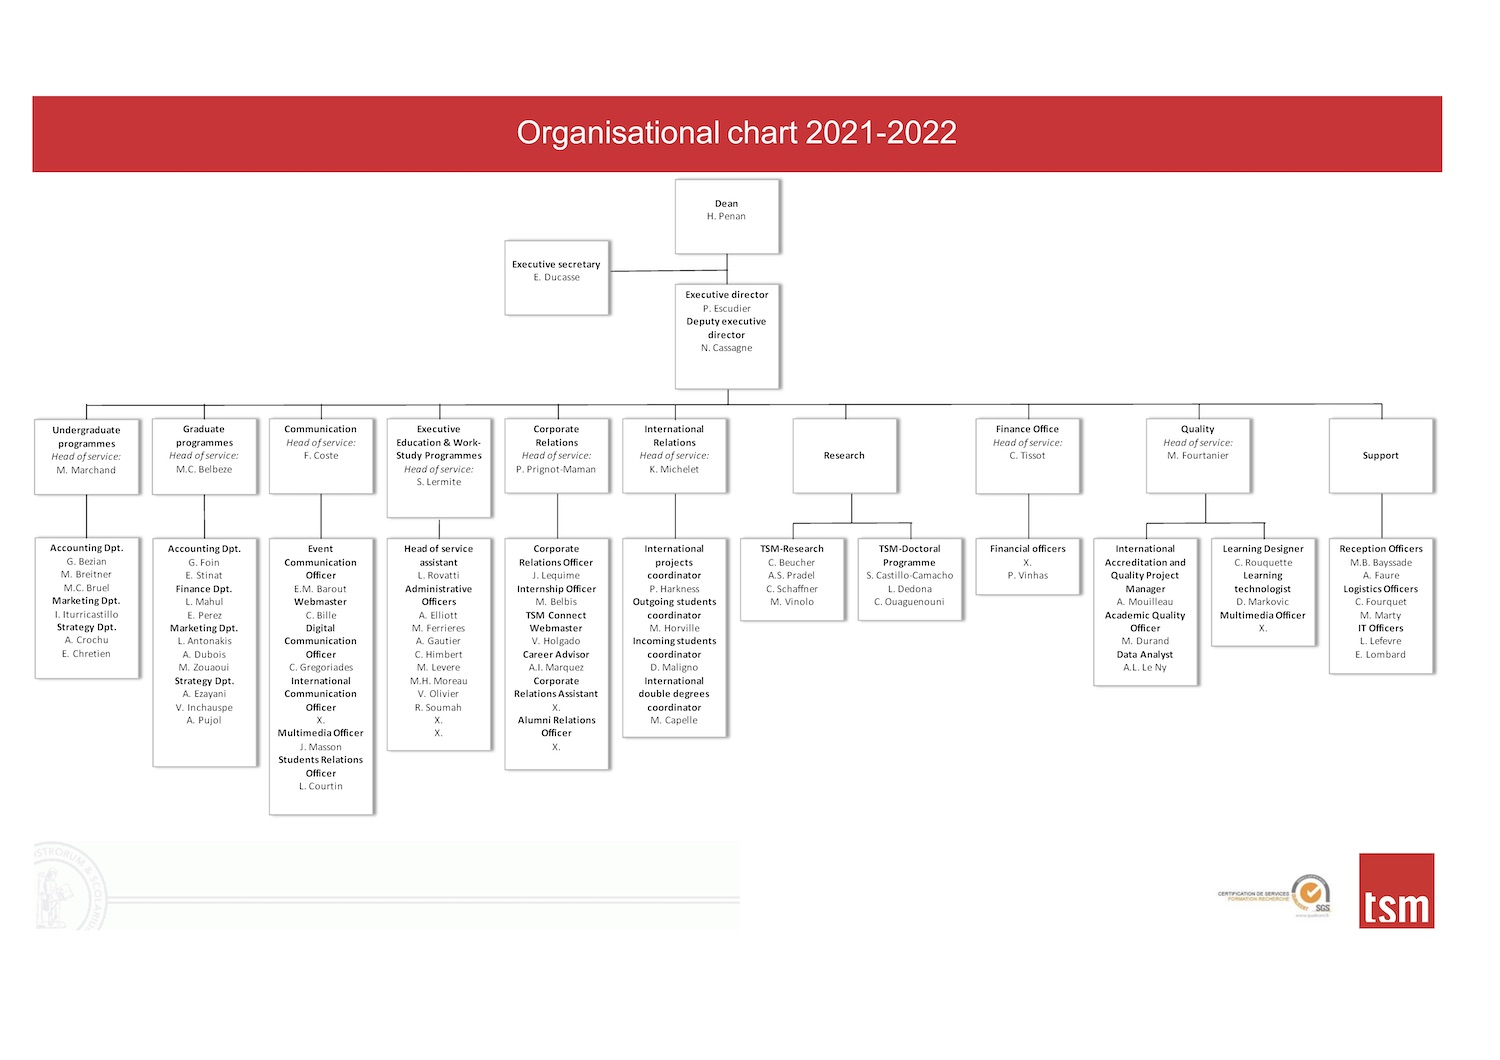 Organizational Chart Toulouse School of Management 2020-2021